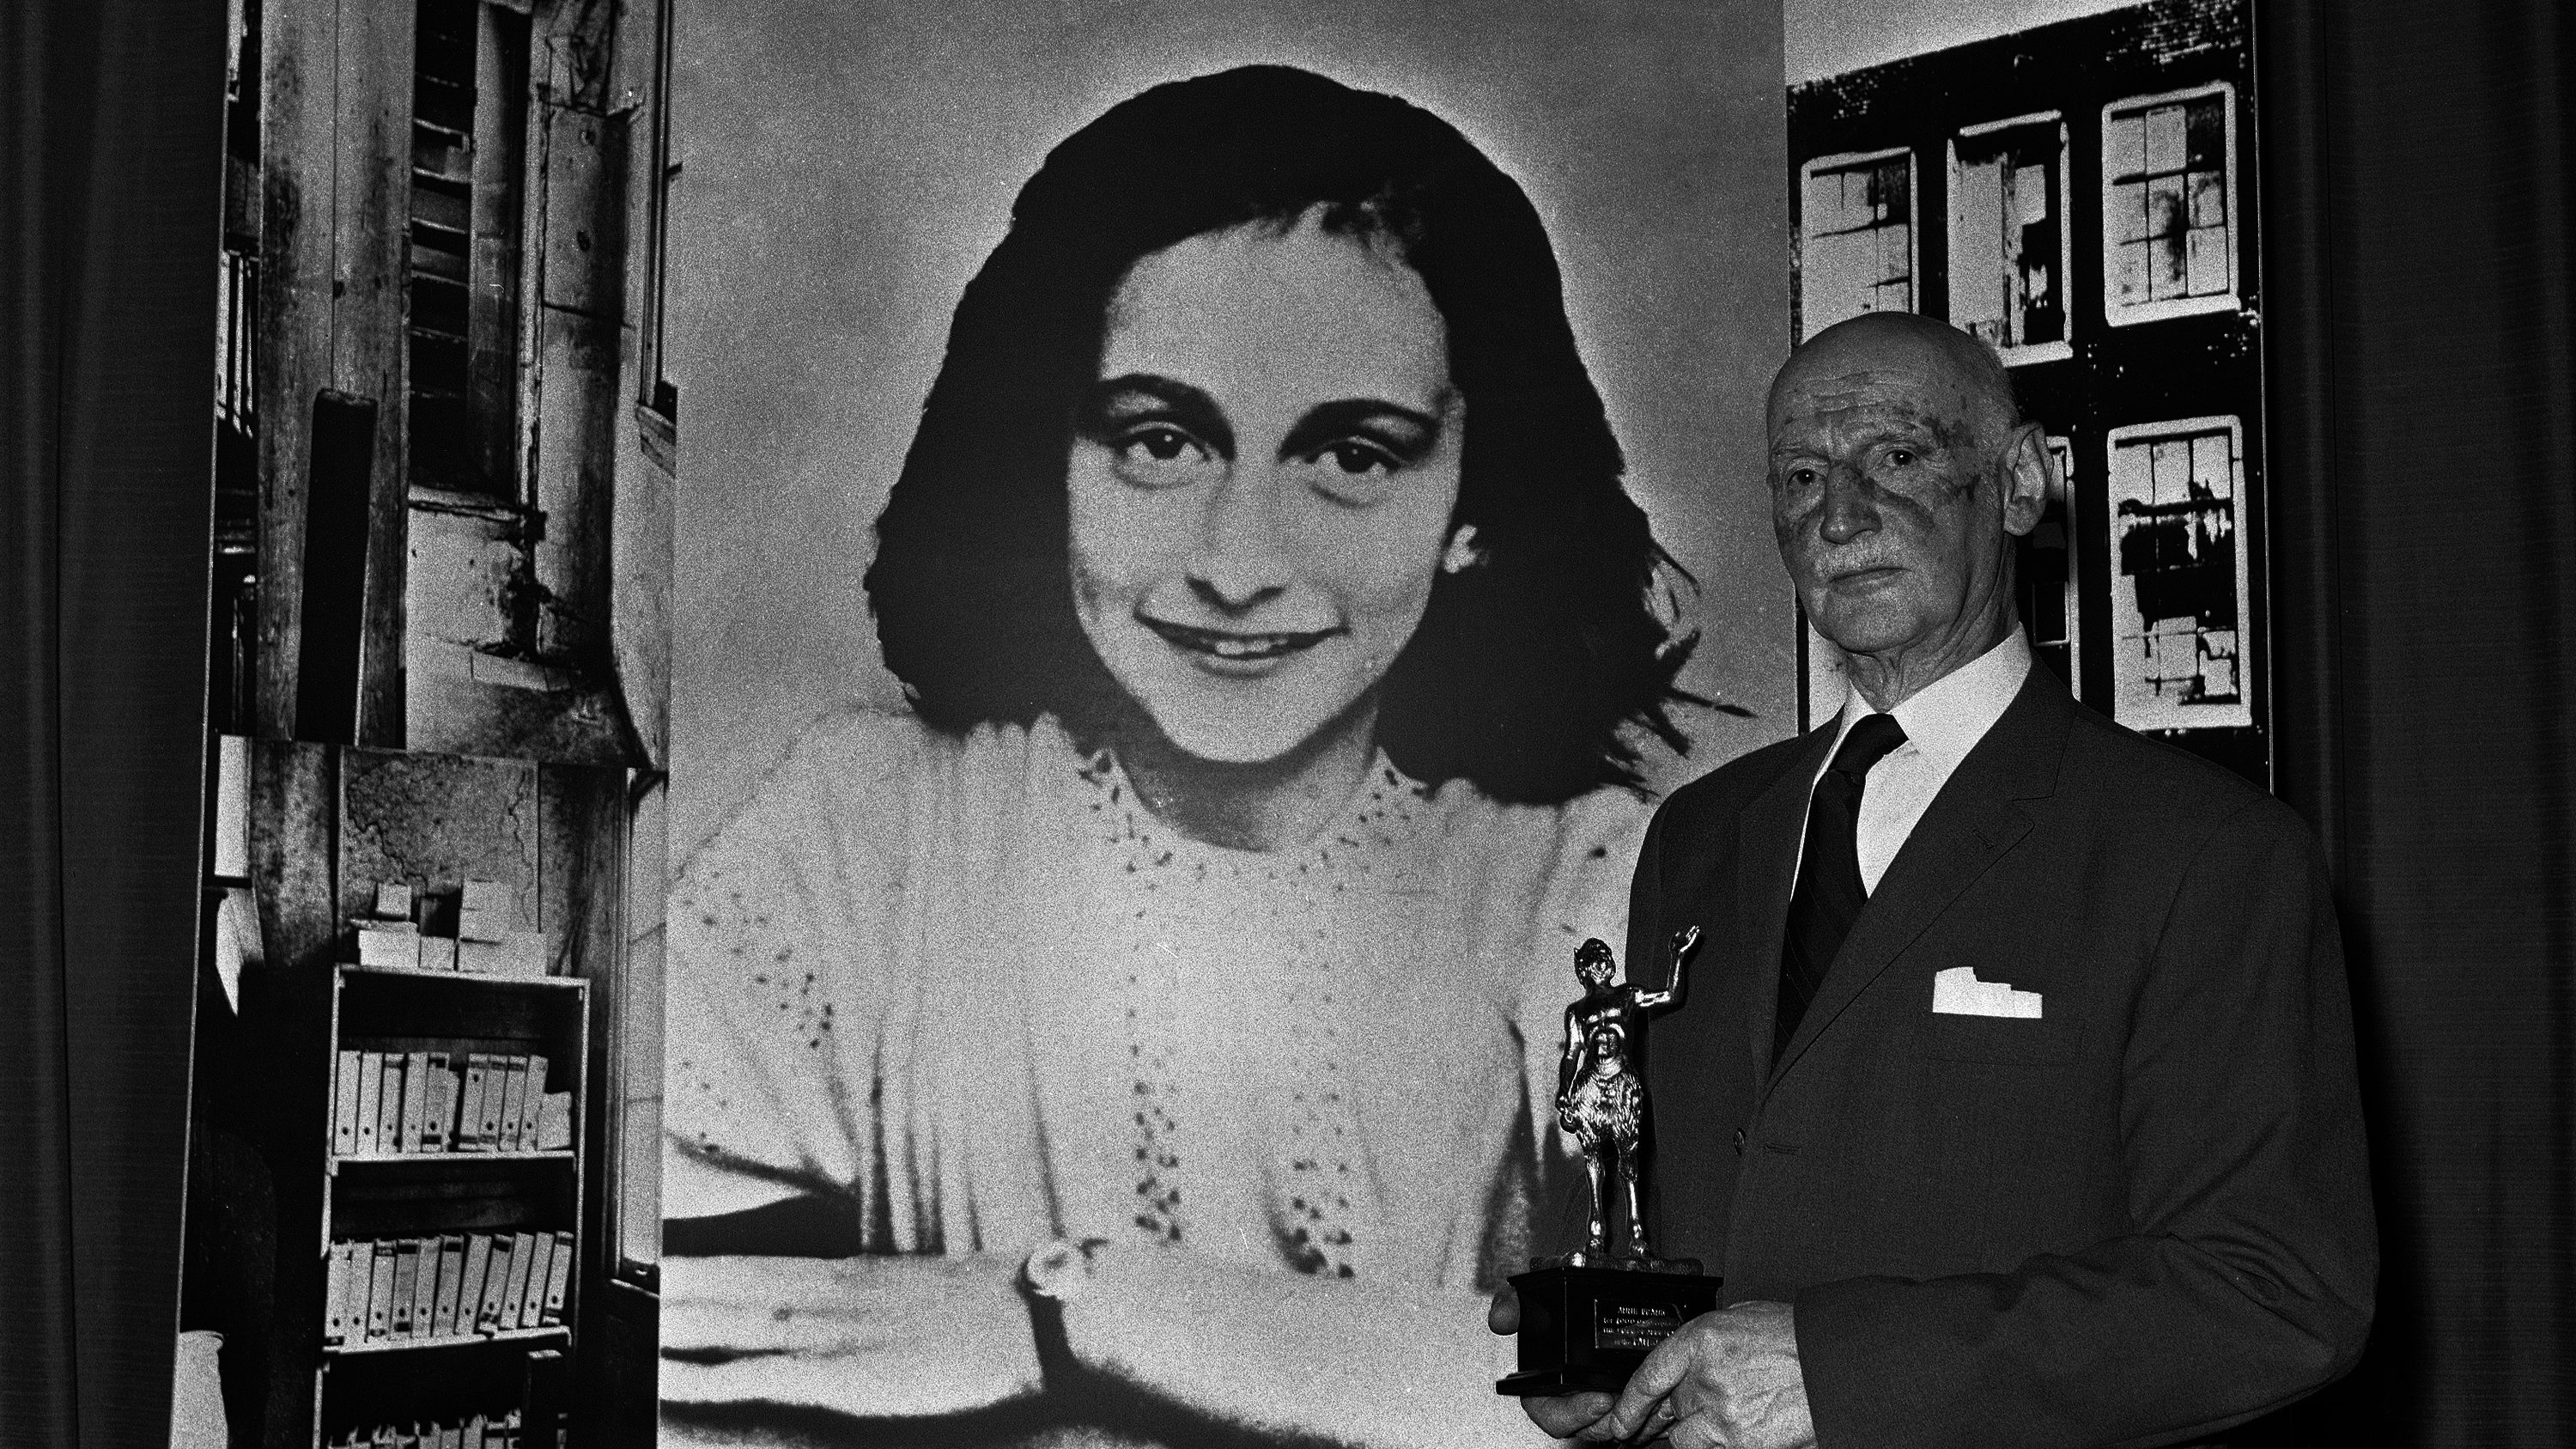 Dr. Otto Frank holds the Golden Pan award, given for the sale of one million copies of the famous paperback, ?The Diary of Anne Frank?. The story of the Jewish family who went into hiding in 1942 in Amsterdam, where they remained undiscovered for two years. After discovery and eventual death, the diary was returned to Dr. Frank, the families only survivor. The award was made in London on June 14, 1971 at the Waldorf Hotel. (AP Photo/Dave Caulkin)